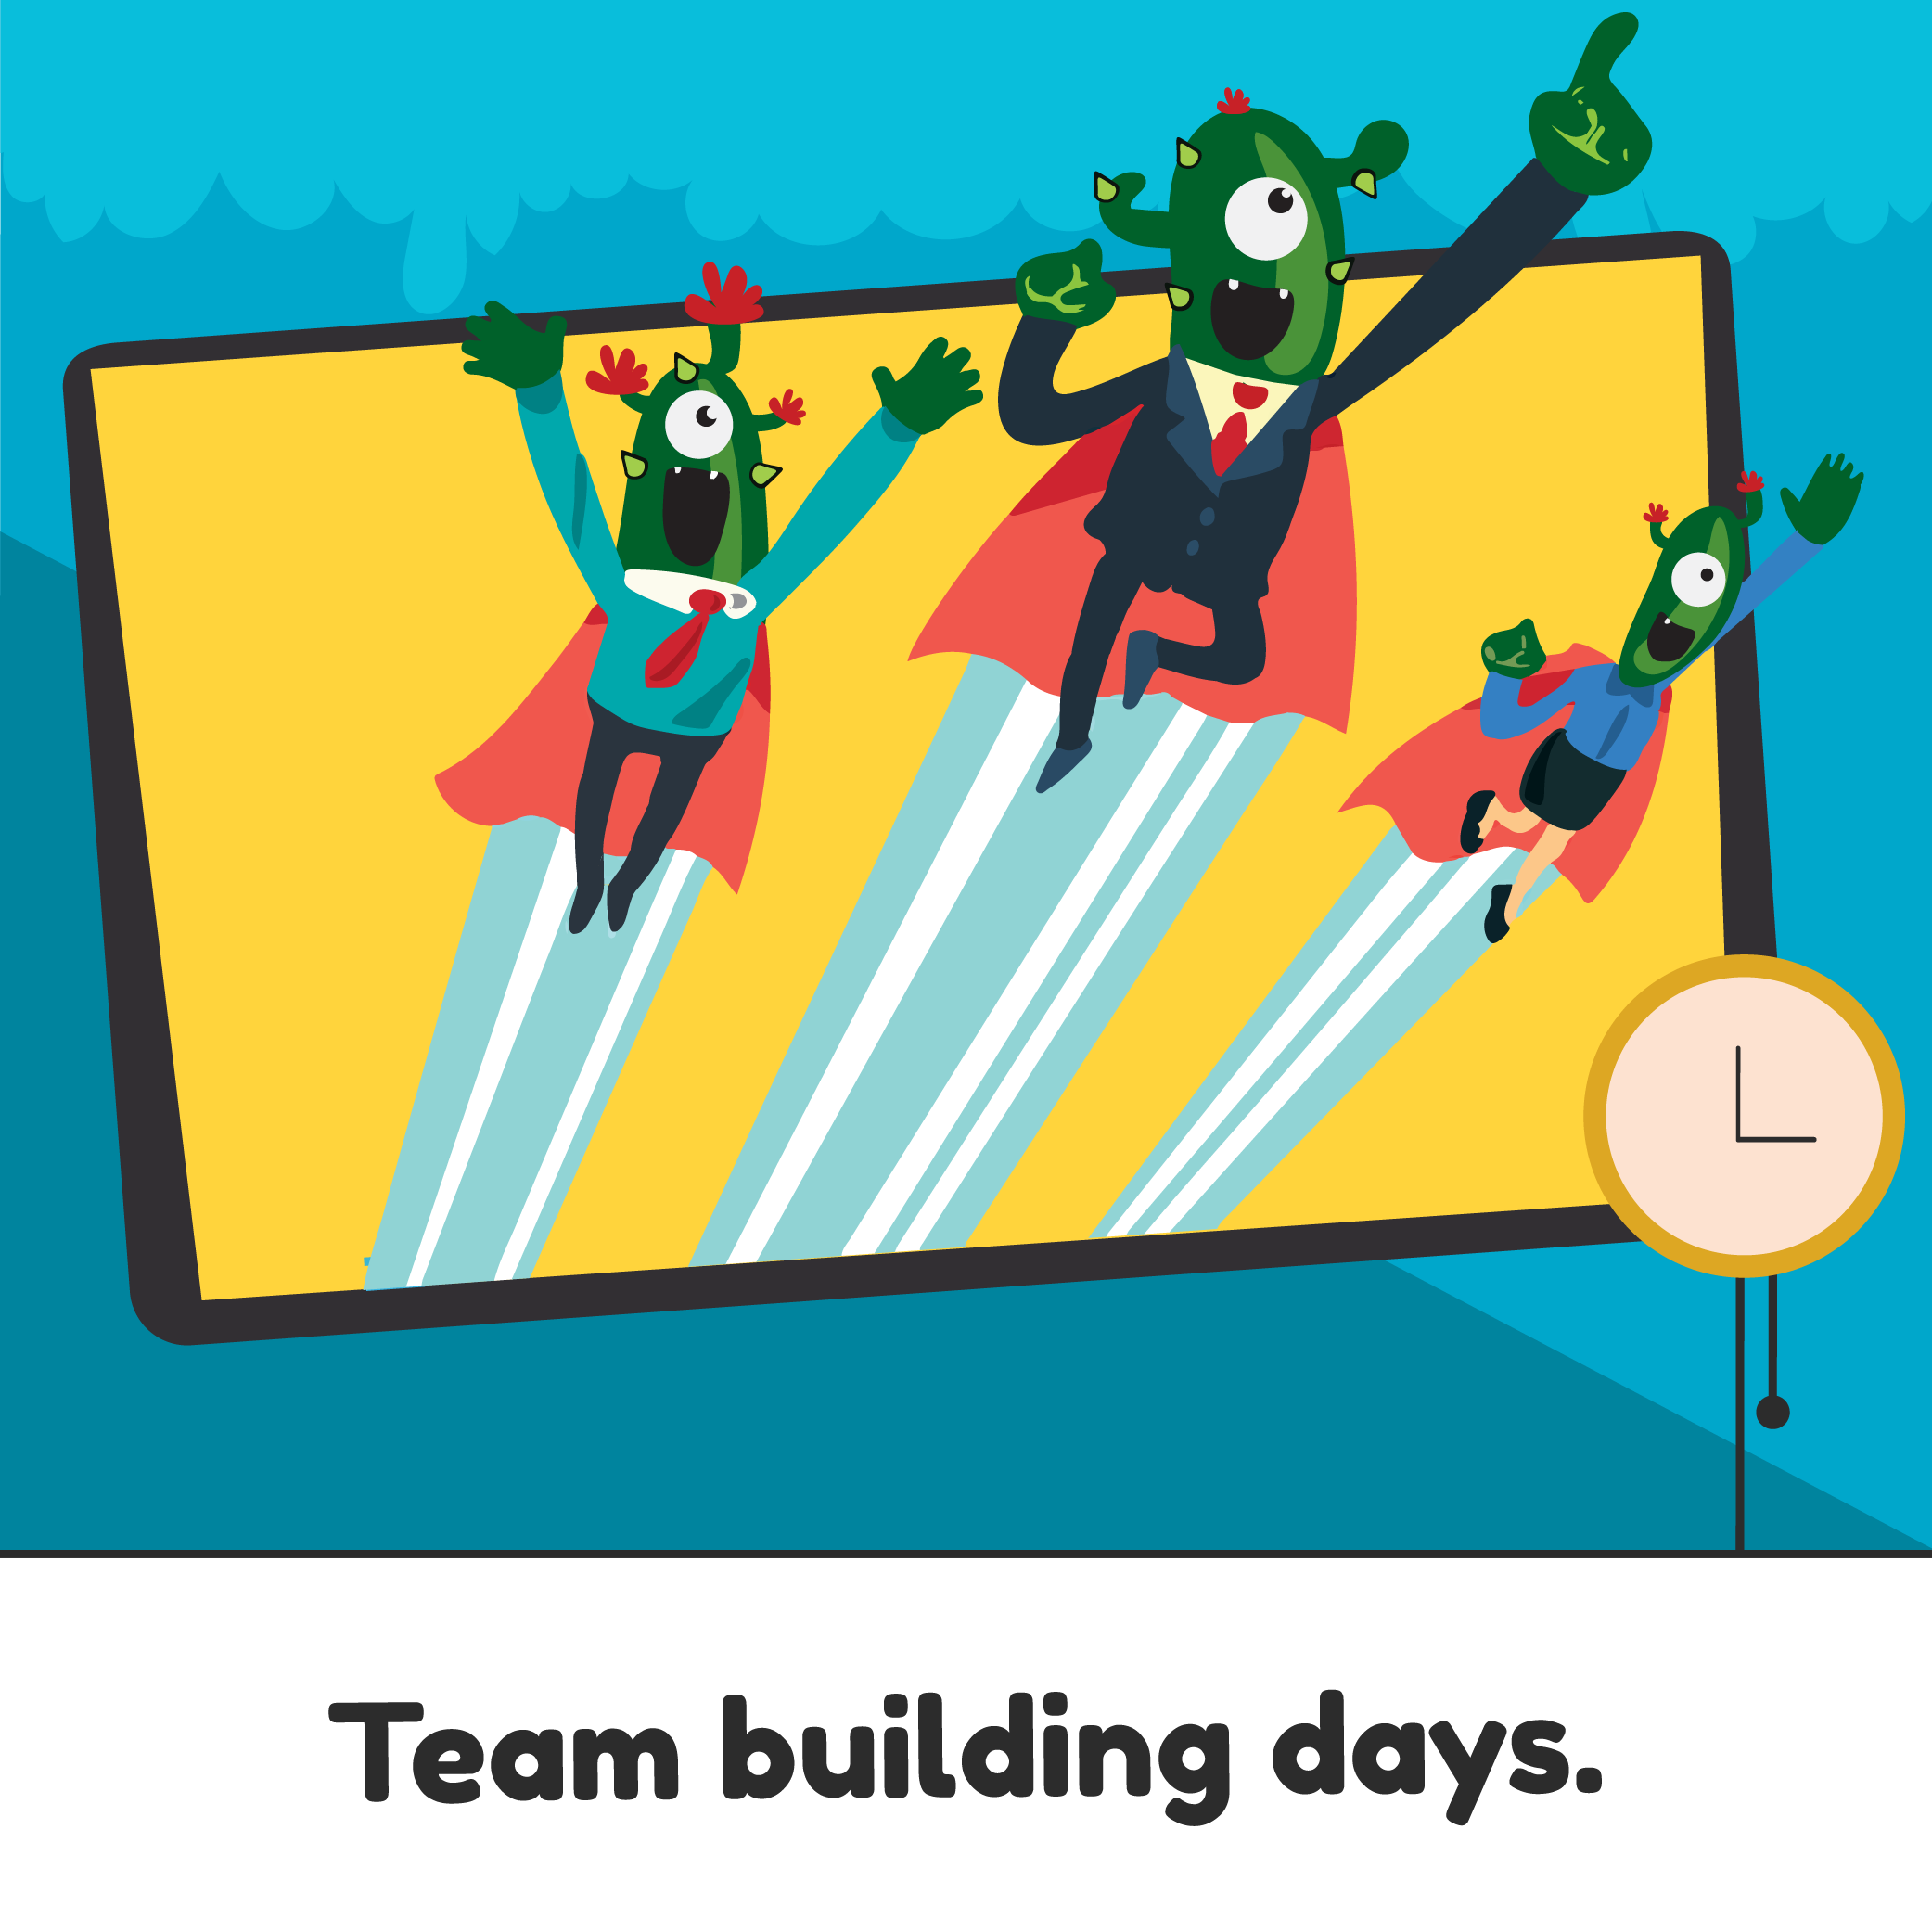 team building, teambuilding, feature image